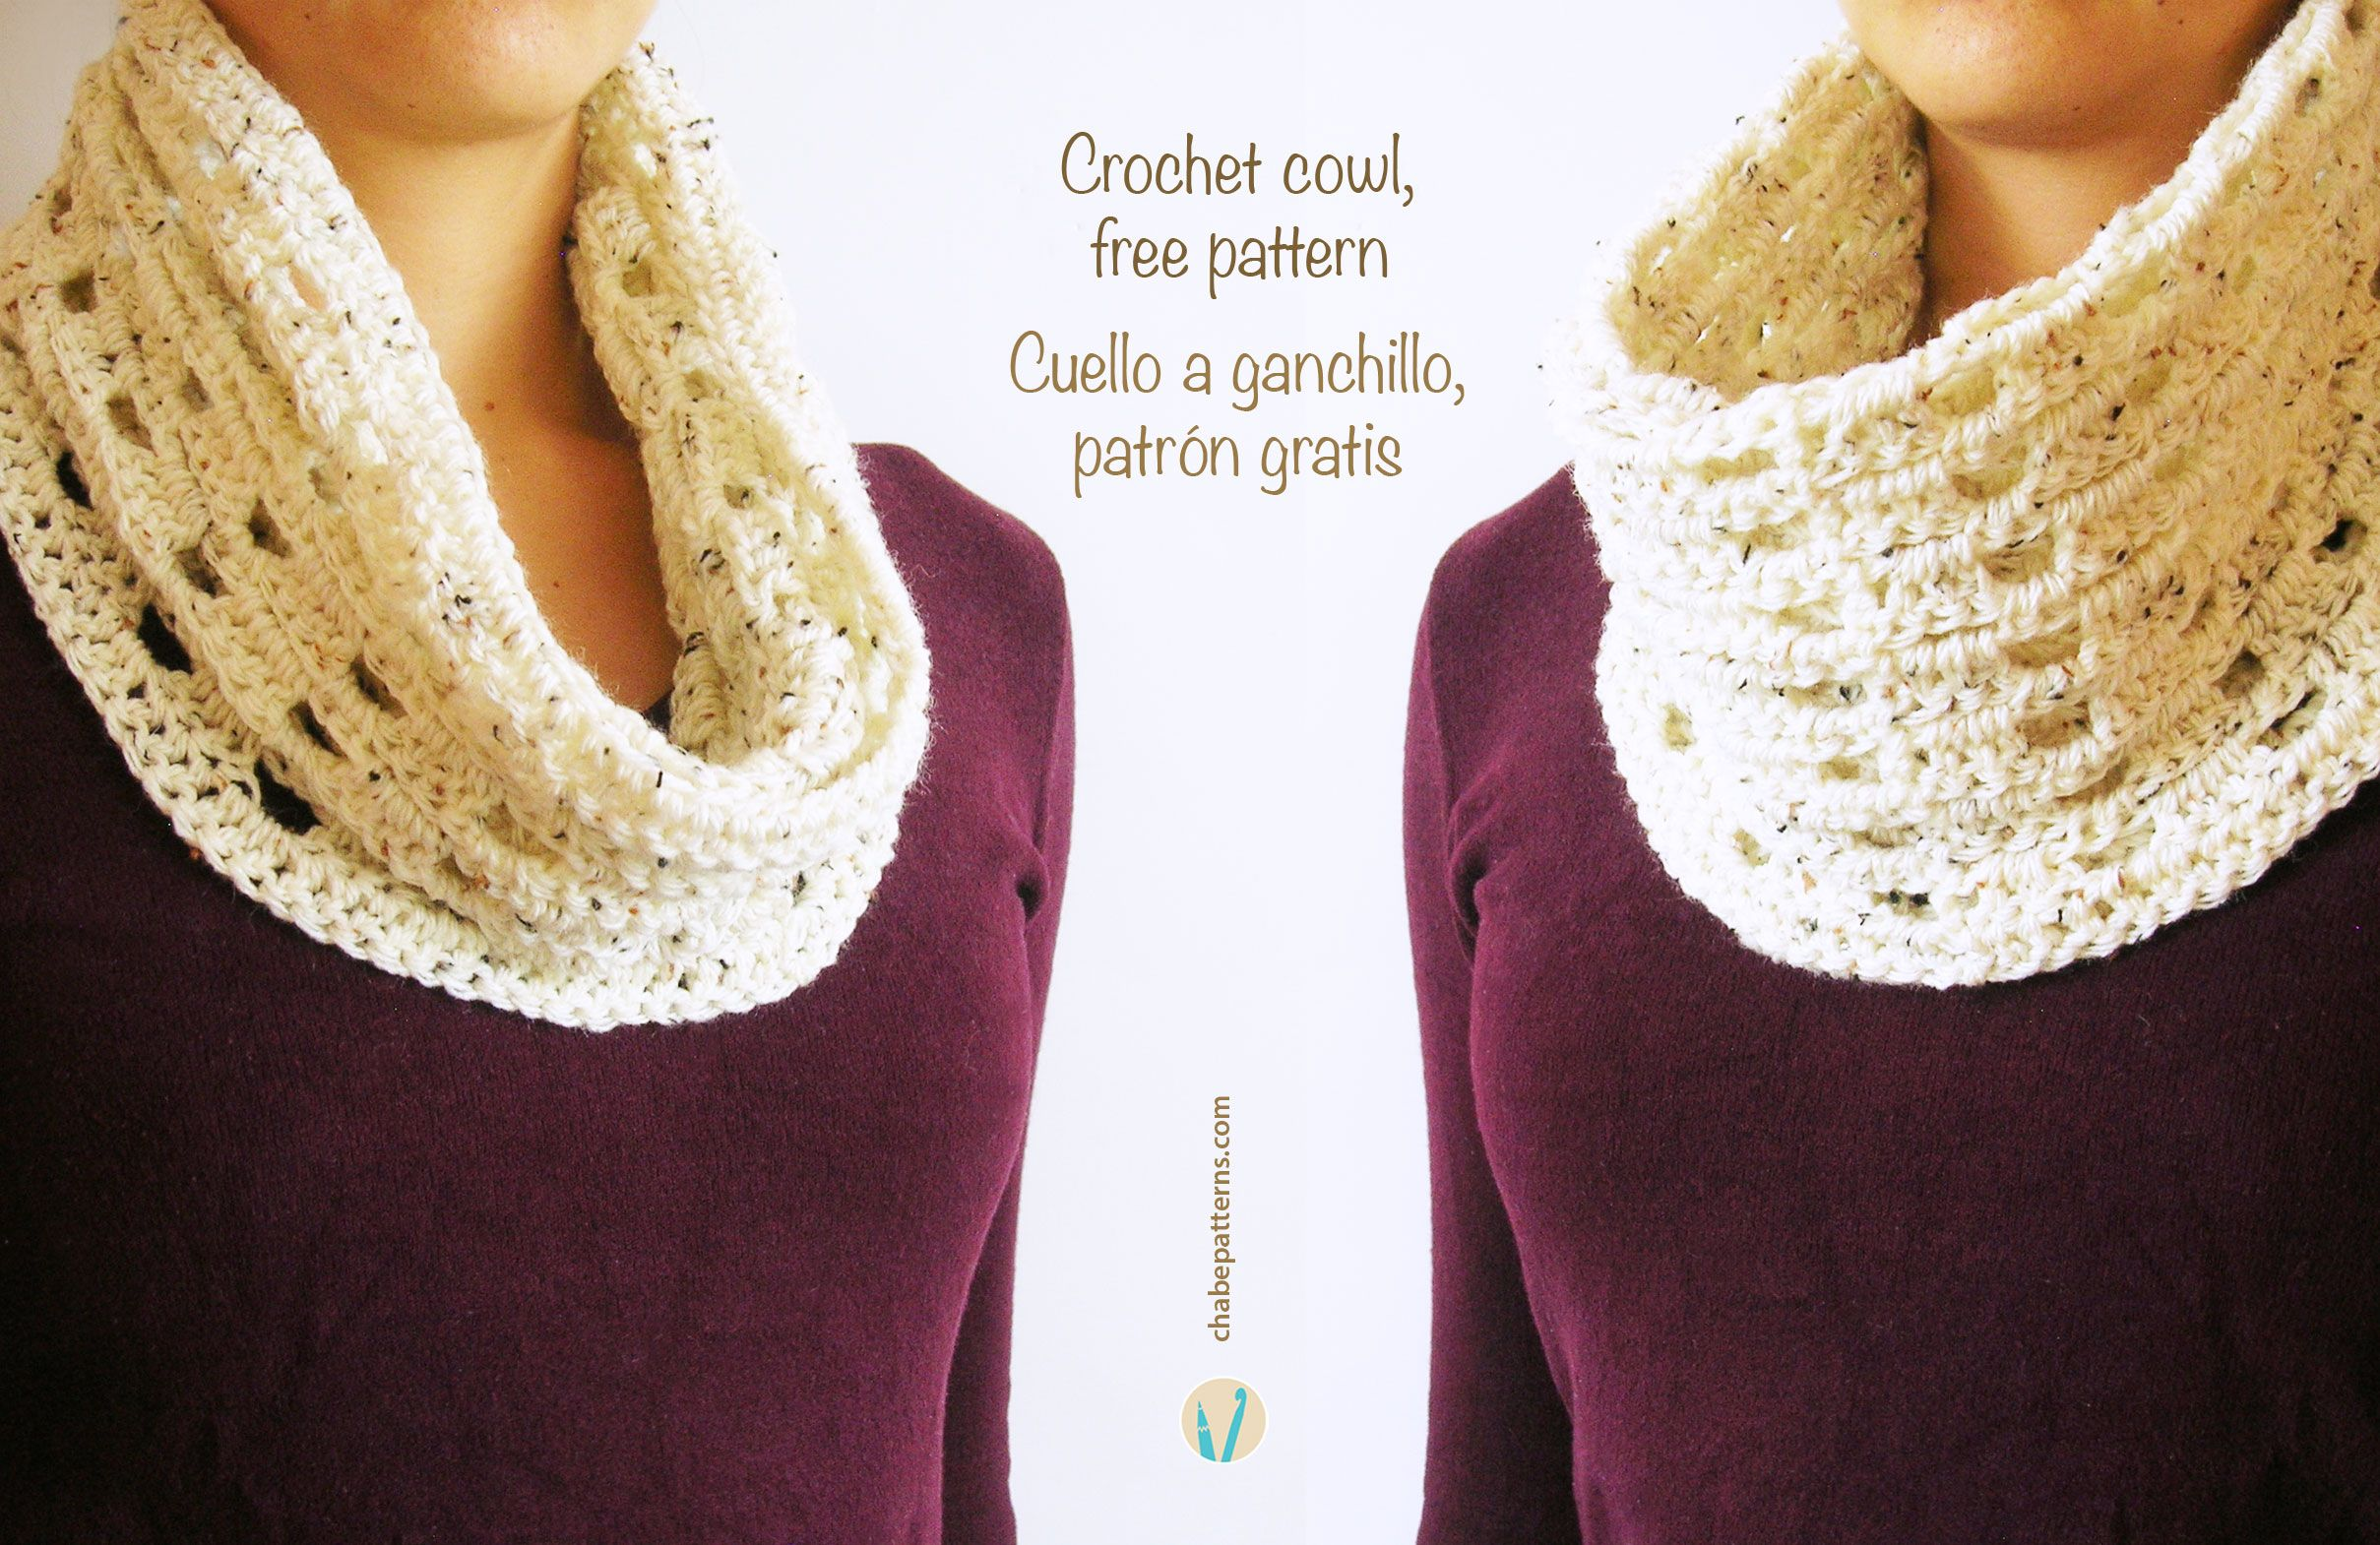 Crochet cowl free pattern, chart with symbols, written instructions ...